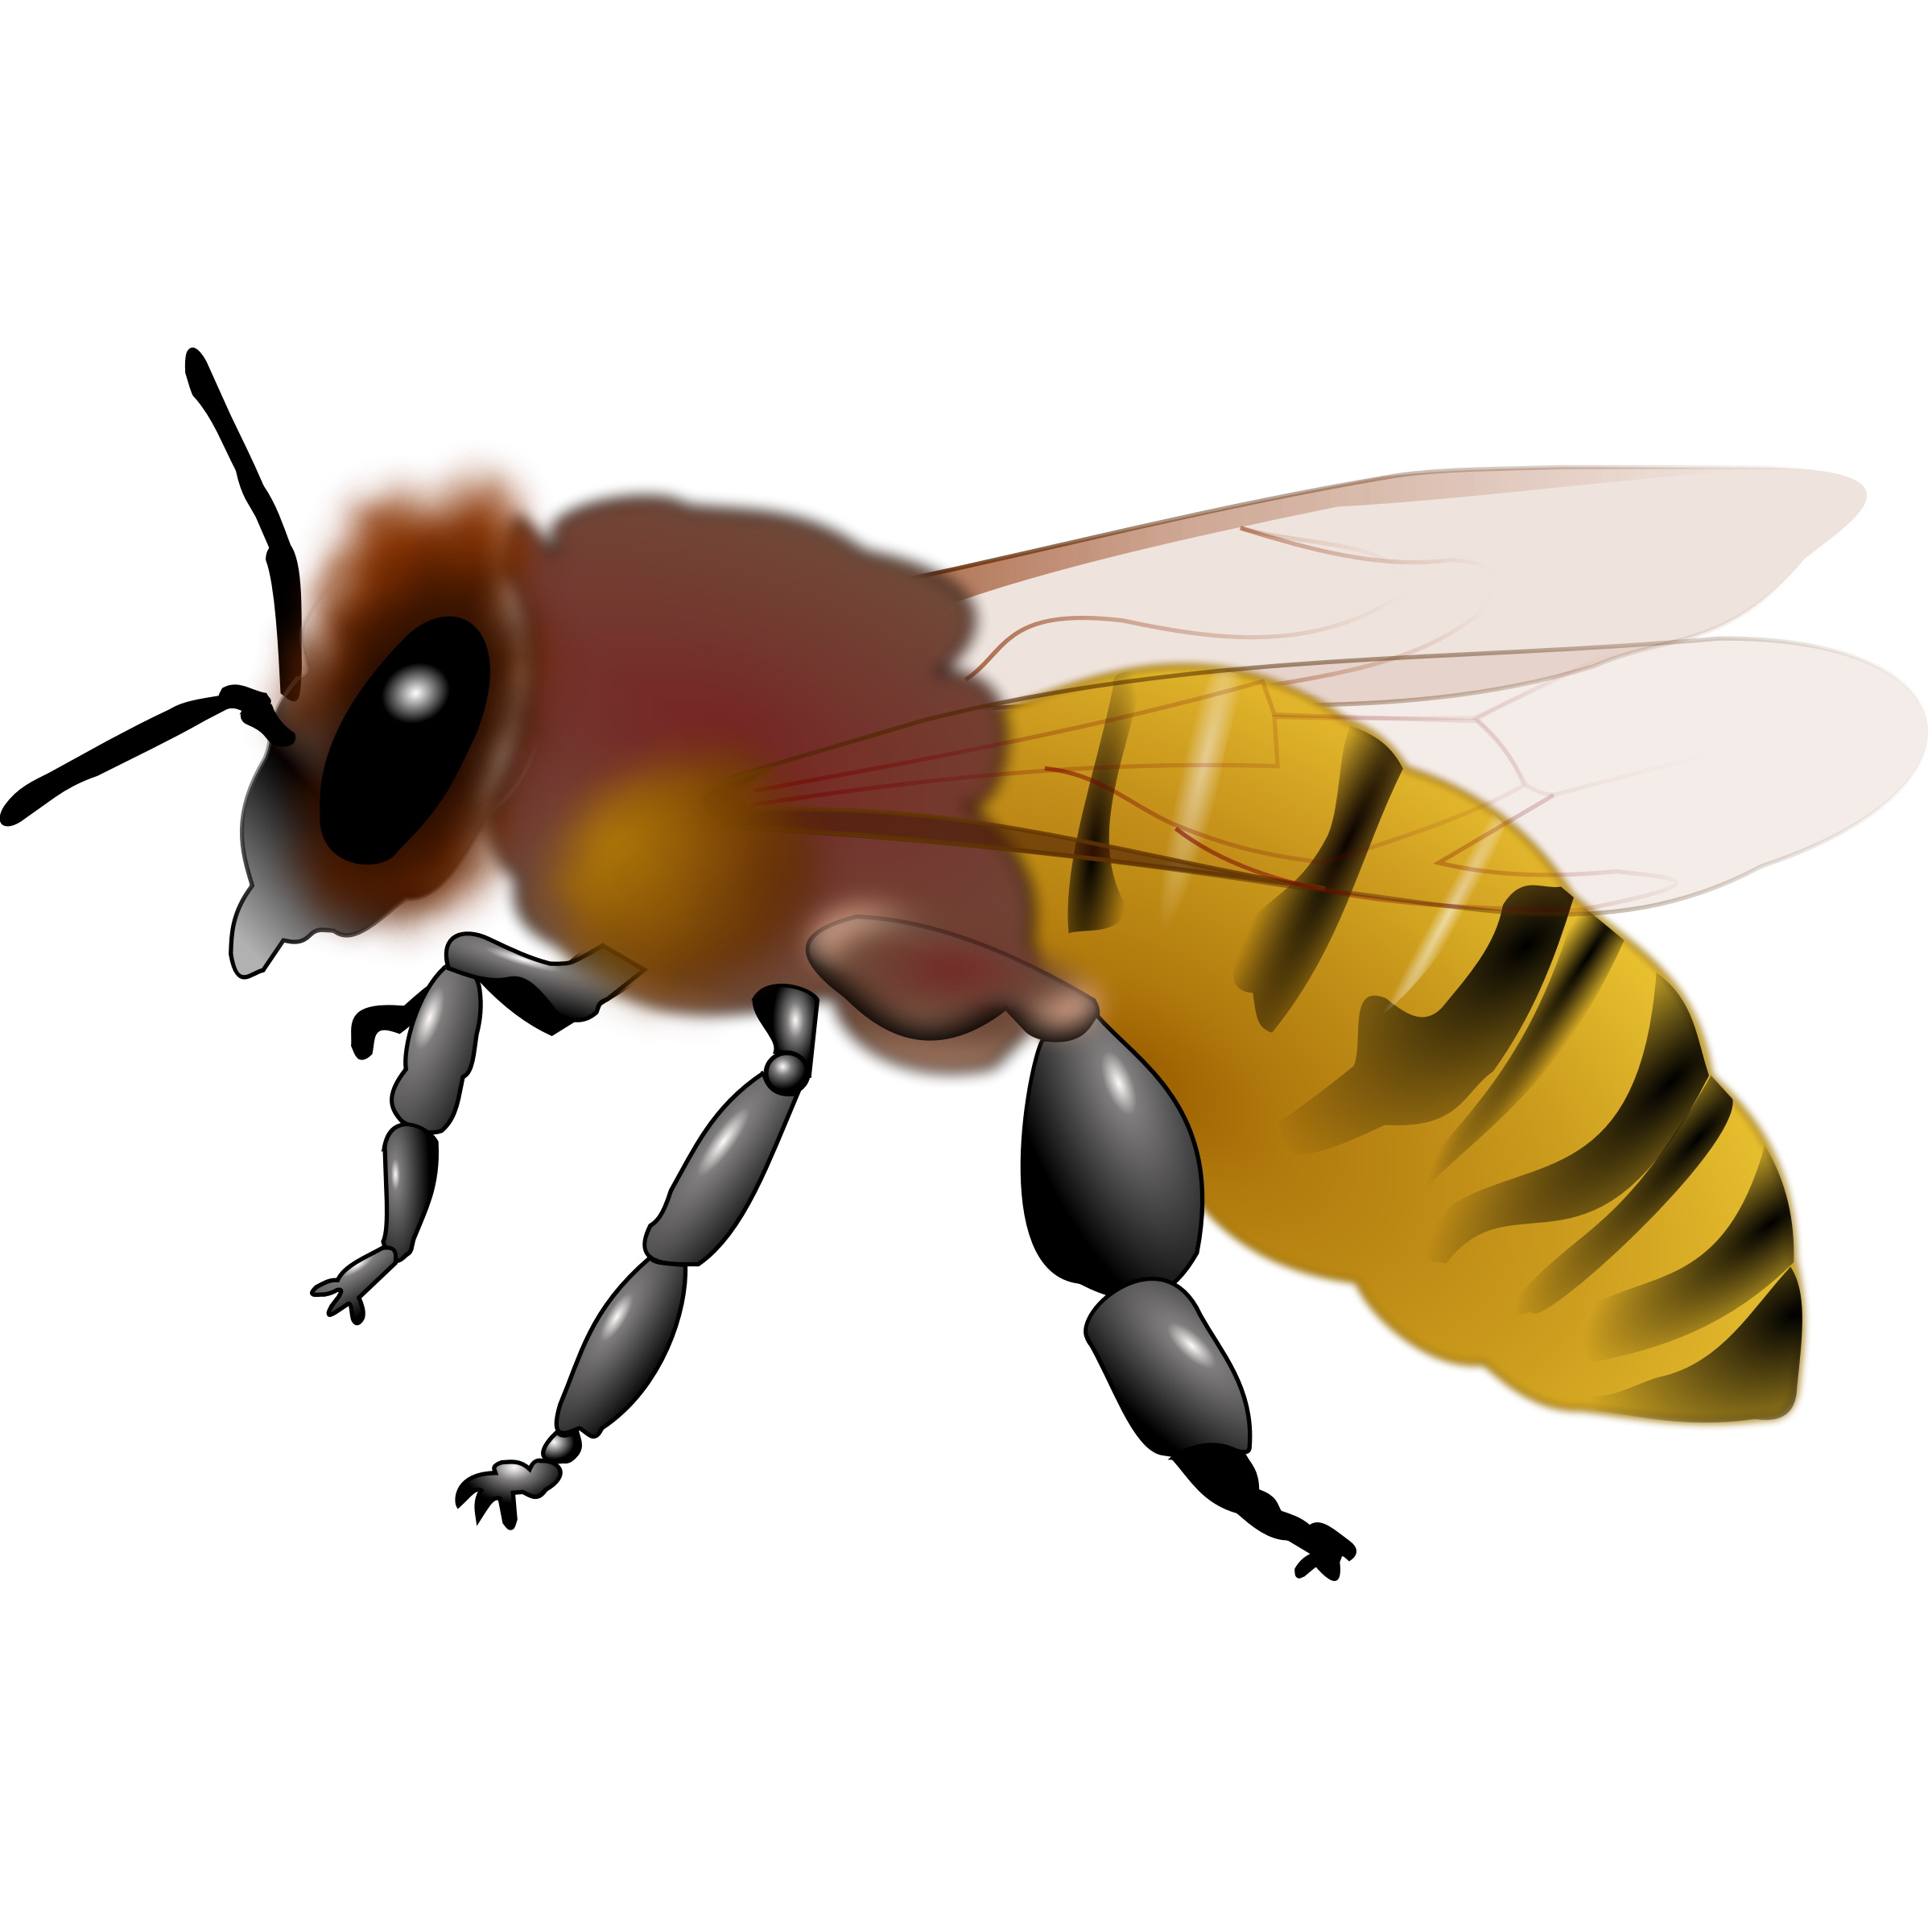 Halloween bumblee clipart clipart royalty free library Bee Clipart : Honeybee | 3D Bee | Pinterest | Clip art free clipart royalty free library